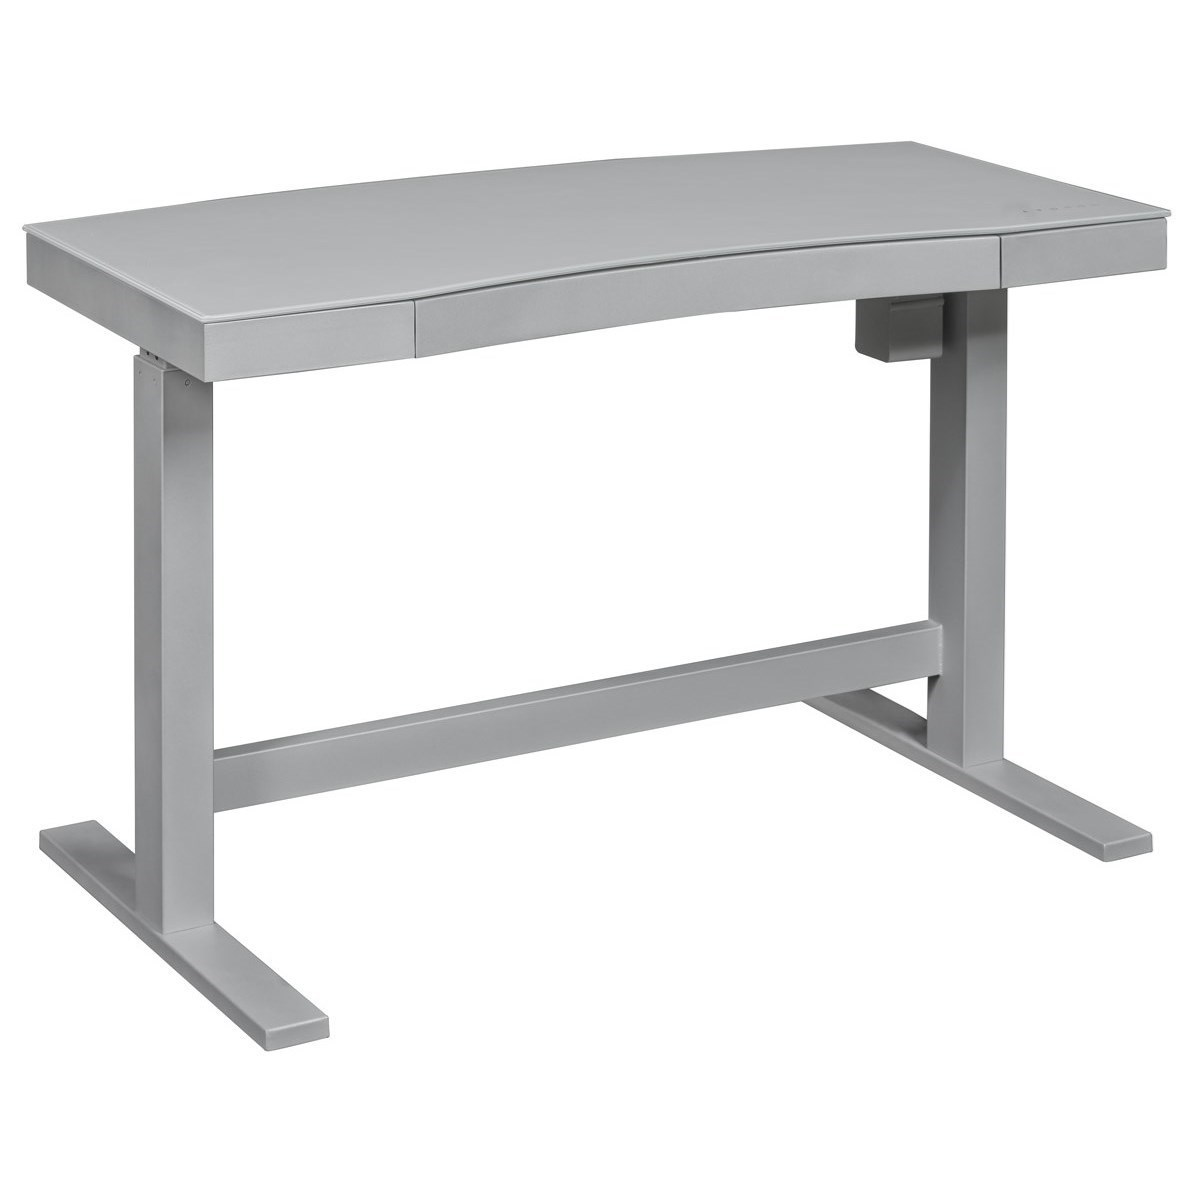 Glass top writing desk Table Ashford Contemporary Adjustable Standing Desk With Gray Frame And White Dry Erase Glass Top By Twin Star Home Darvin Furniture Twin Star Home Ashford Contemporary Adjustable Standing Desk With